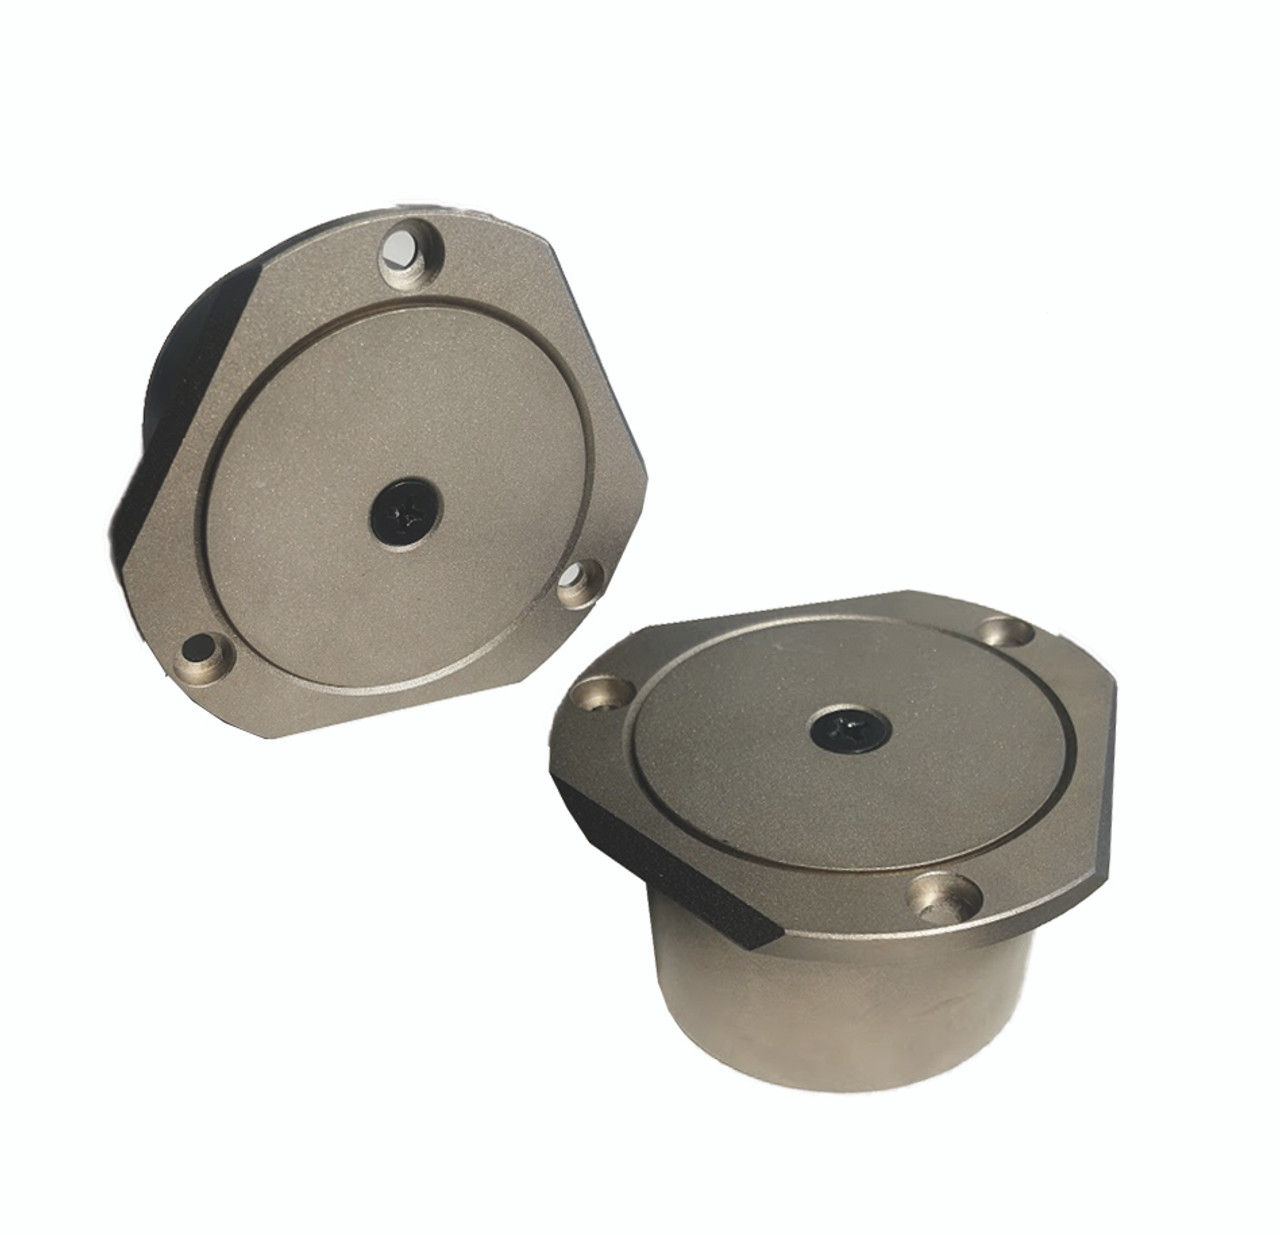 Chip Cover for HS-10 Power Chuck